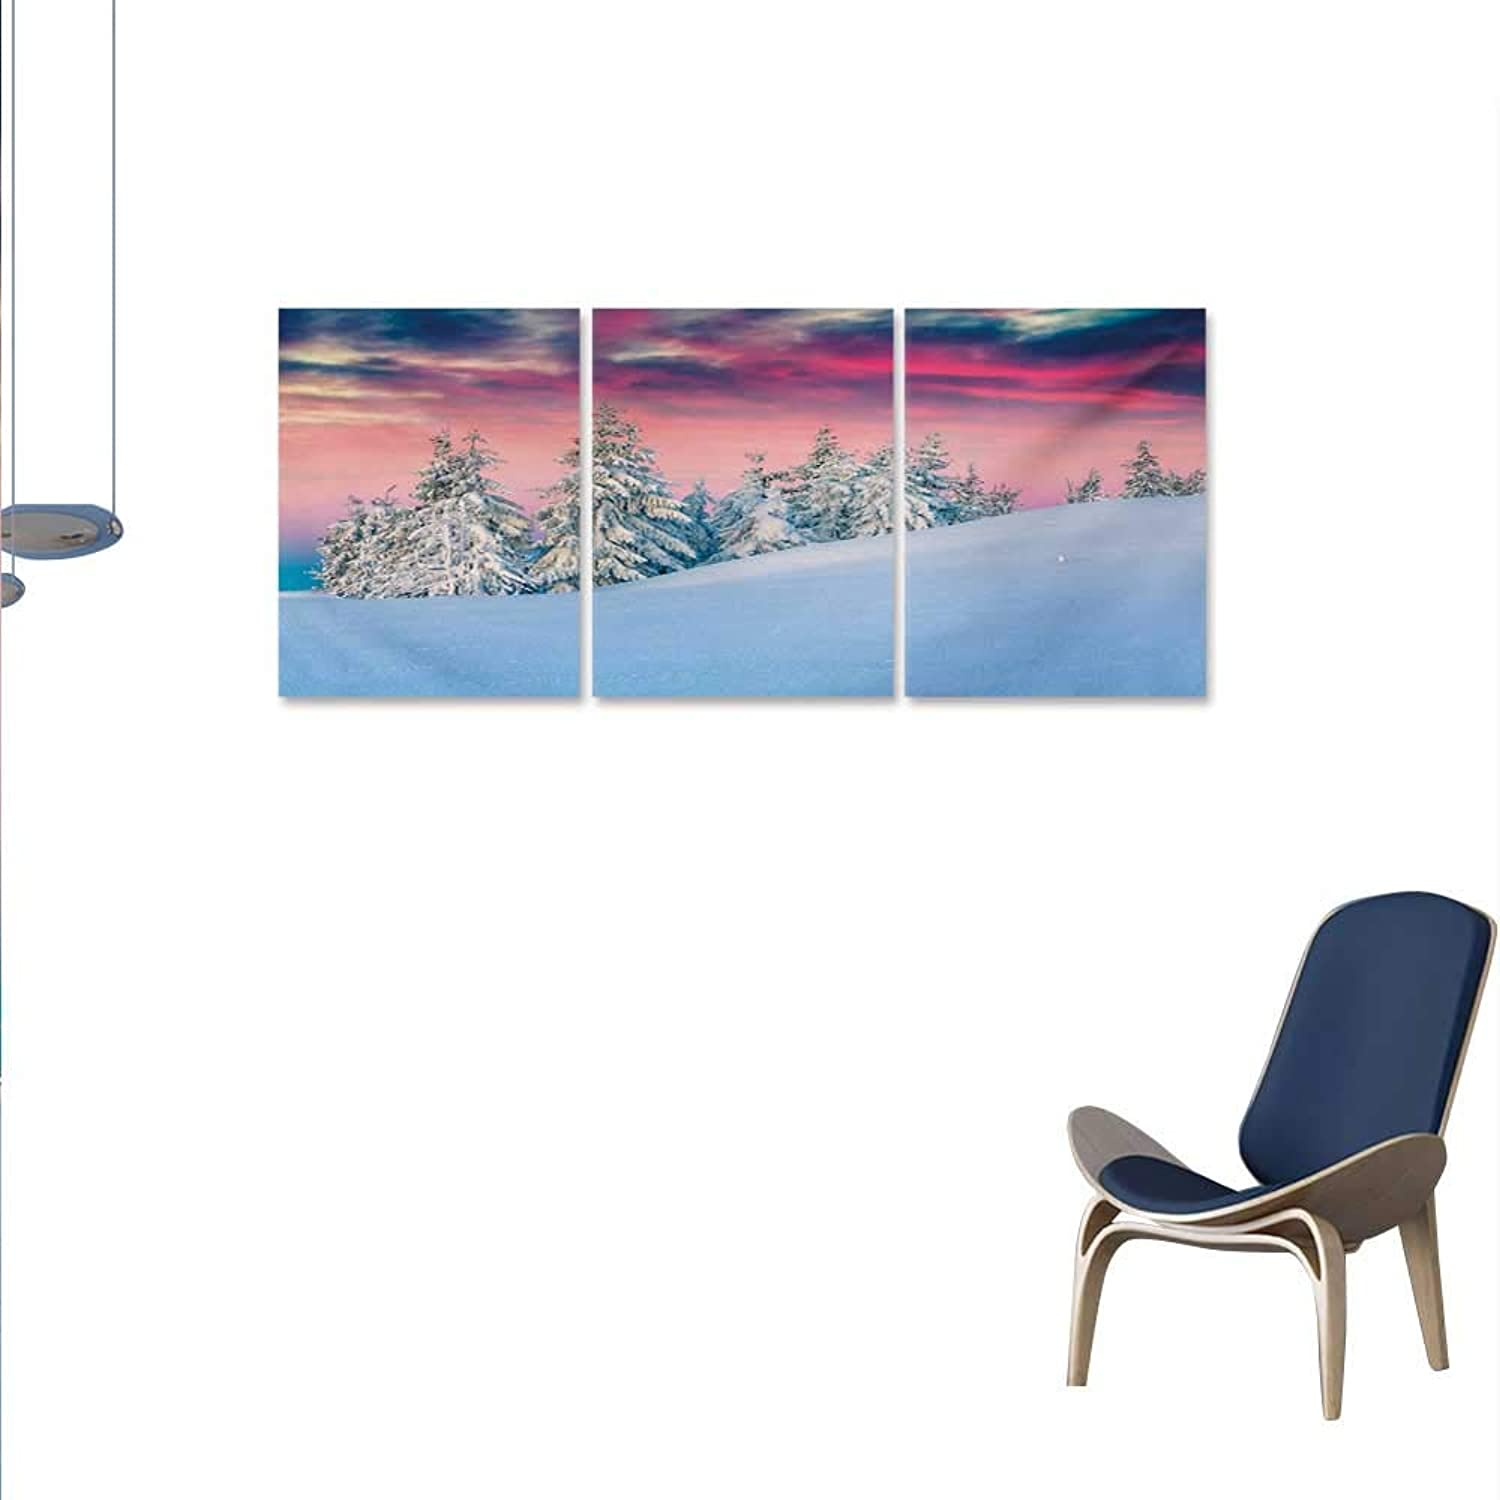 Winter 3 Piece Canvas Wall Art Idyllic Scenery in Snow Covered Serene Mountains Pine Tree Forest Majestic Sky Print Paintings for Home Wall Office Decor 16 x24 x3pcs Pink bluee Cream